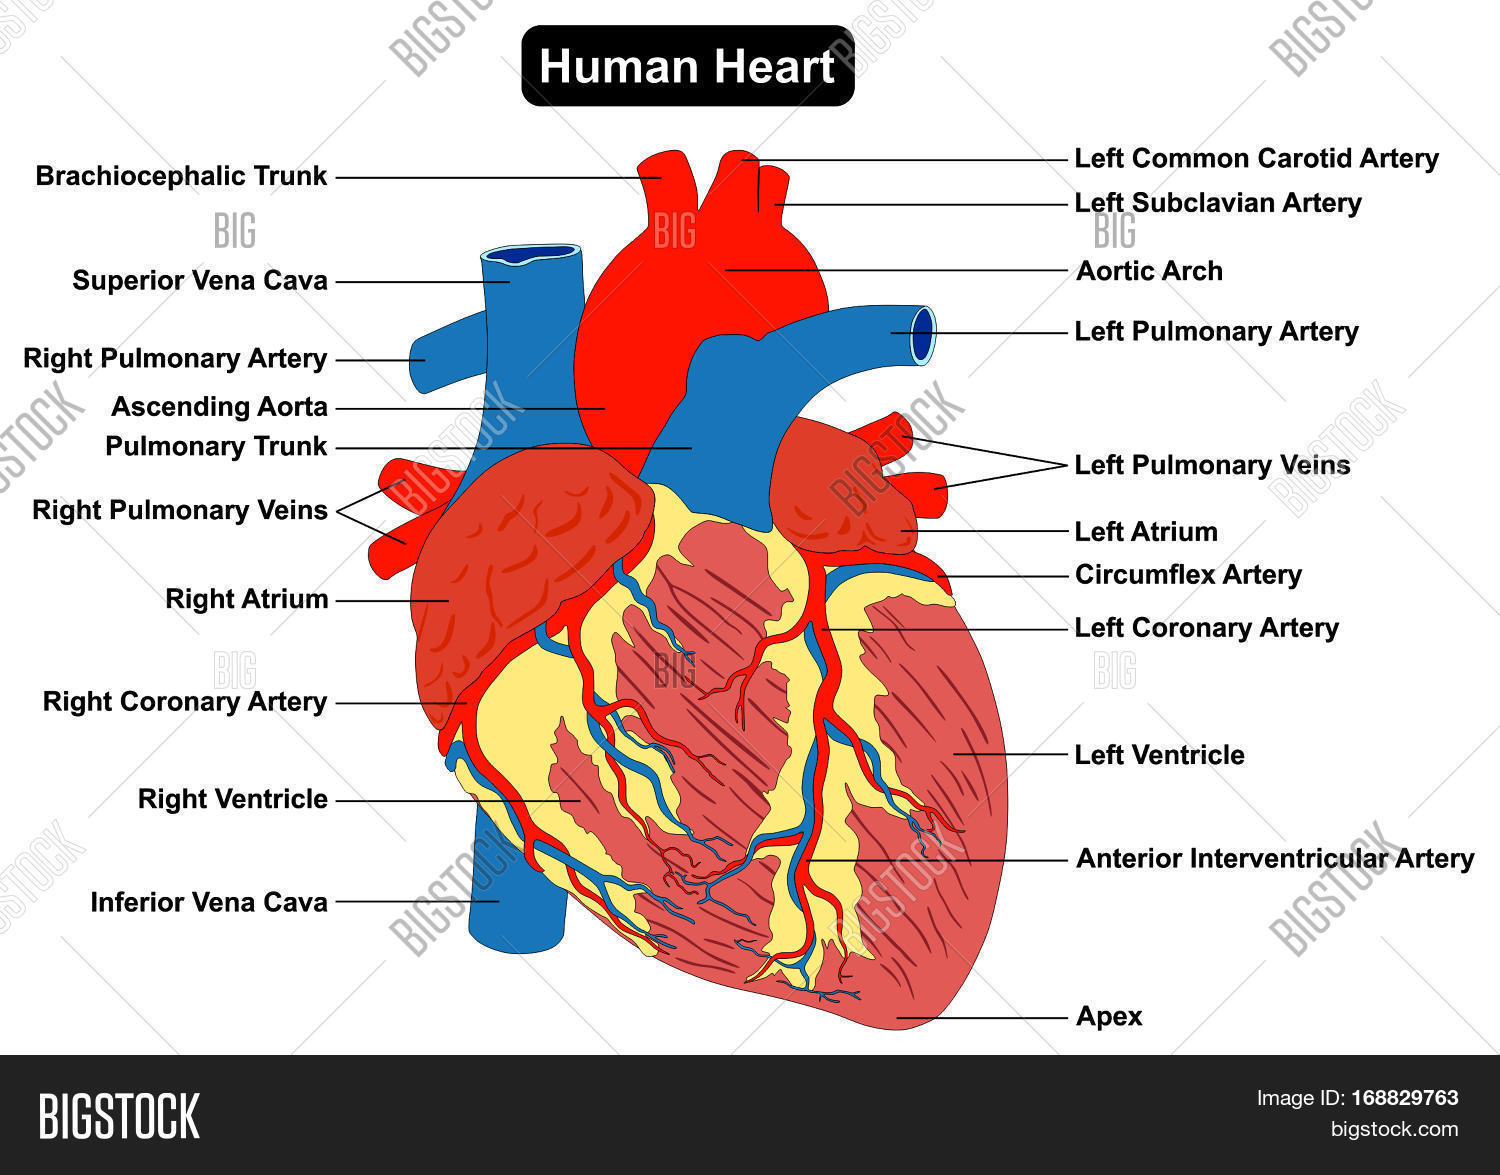 human heart muscle structure anatomy infographic chart diagram, Muscles